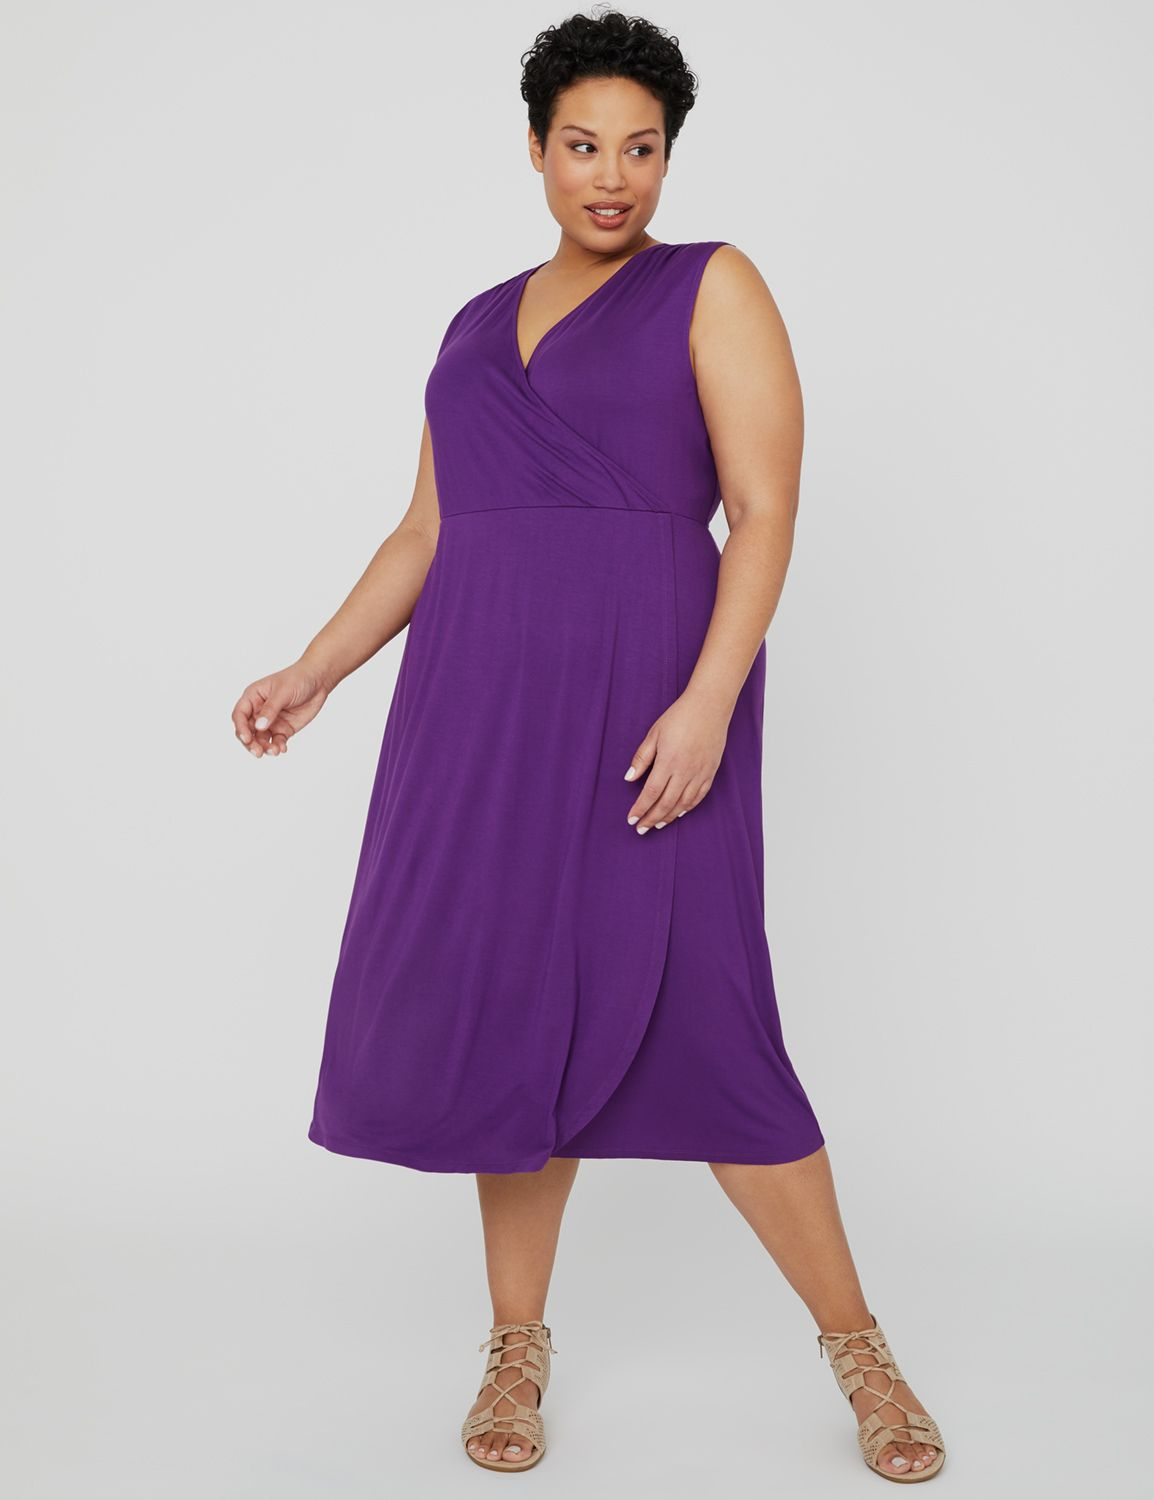 Riverview Wrap Dress 1088151 Vneck Front and Back Maxi E MP-300102346